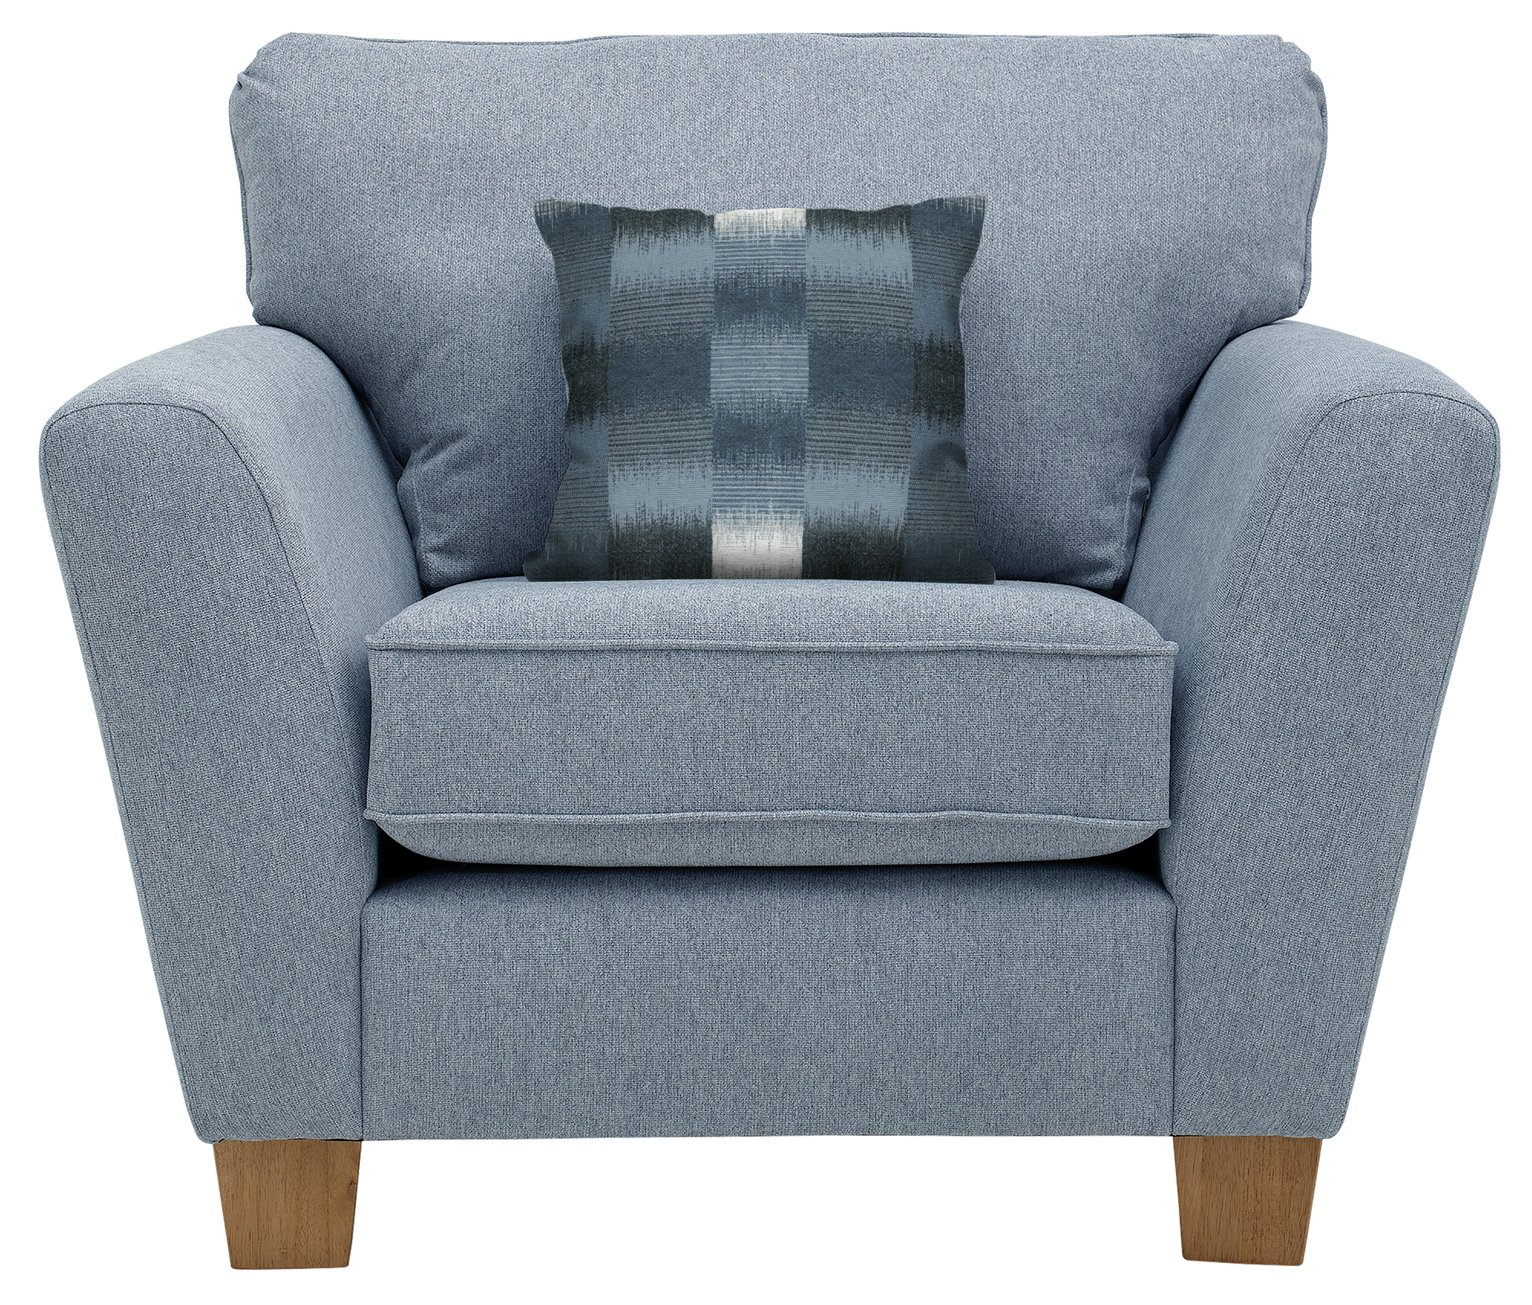 Argos Home Auria Fabric Armchair - Blue